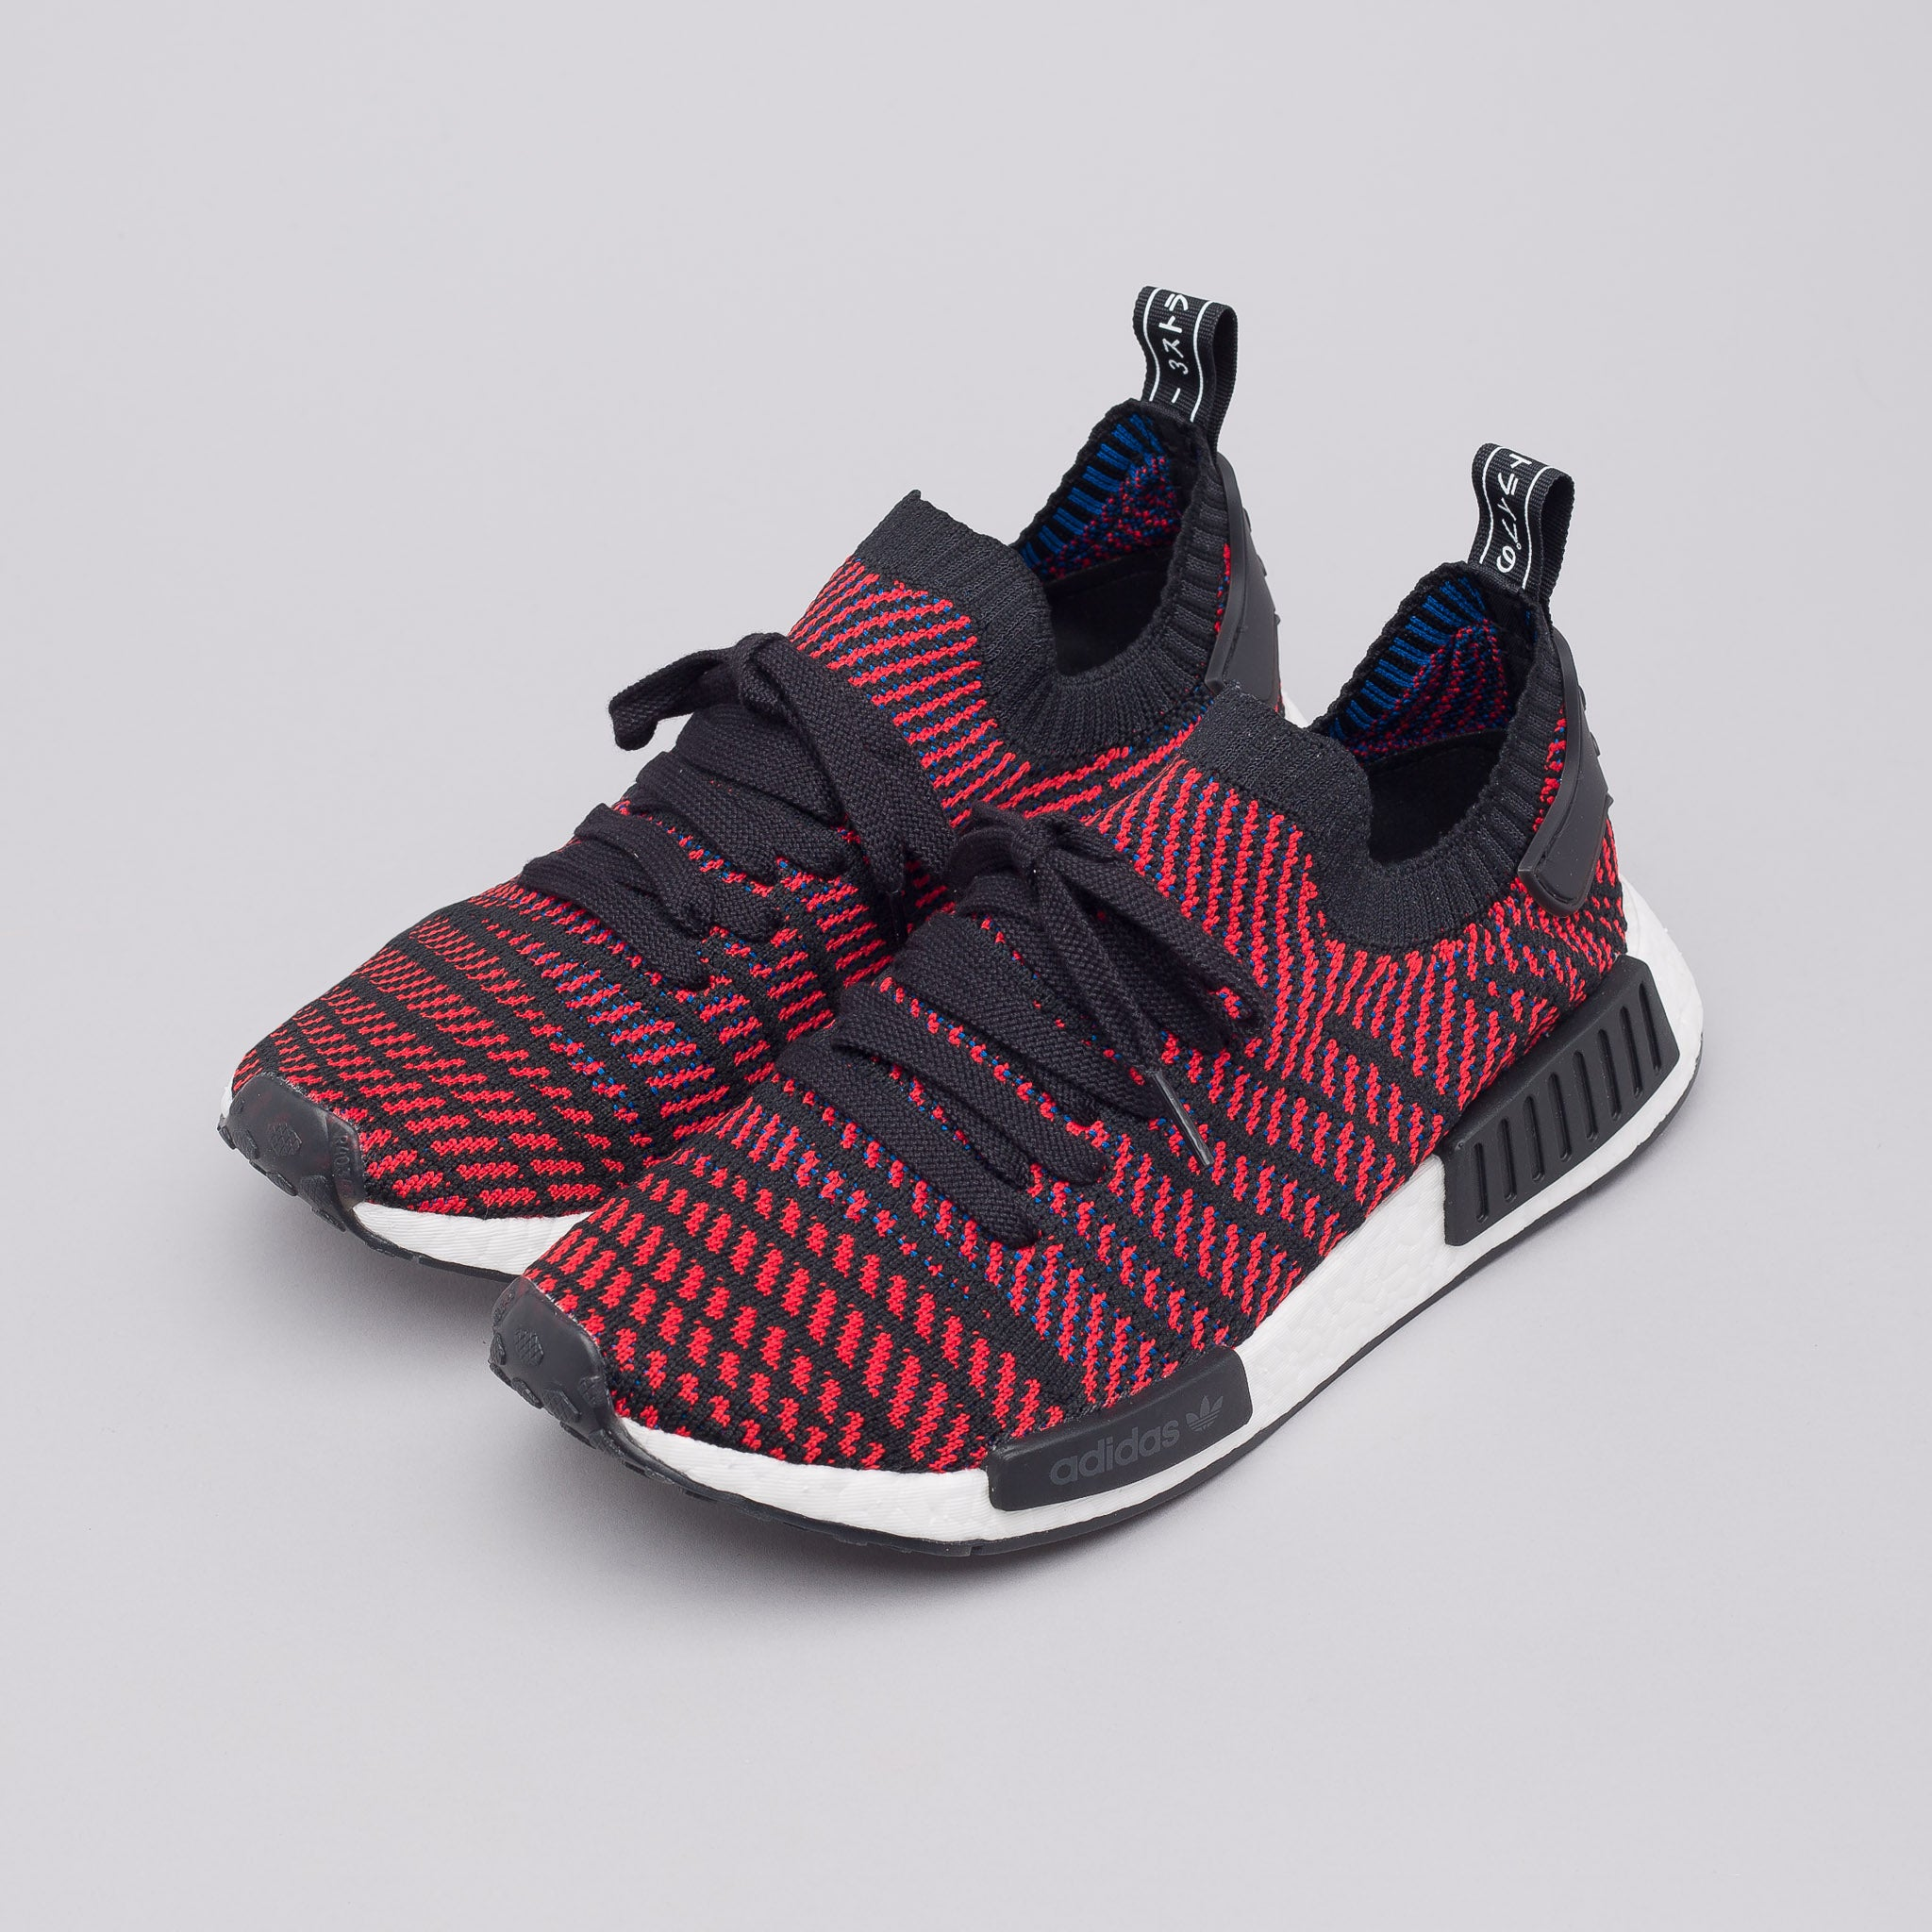 Adidas NMD R1 Primeknit US Tri Color PK BB2887 BLACK 6.5 13